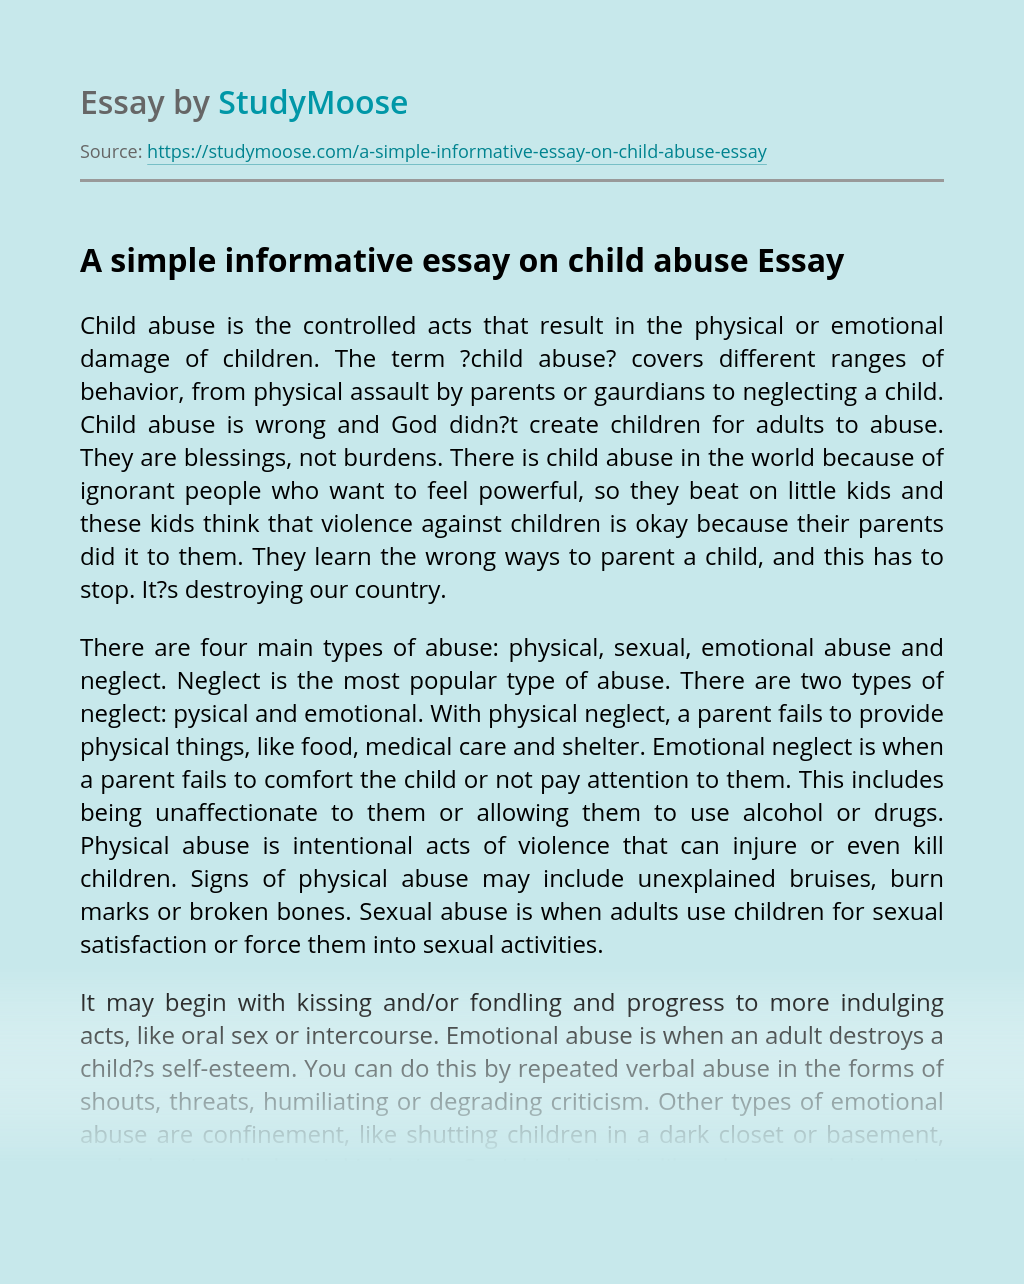 A simple informative essay on child abuse